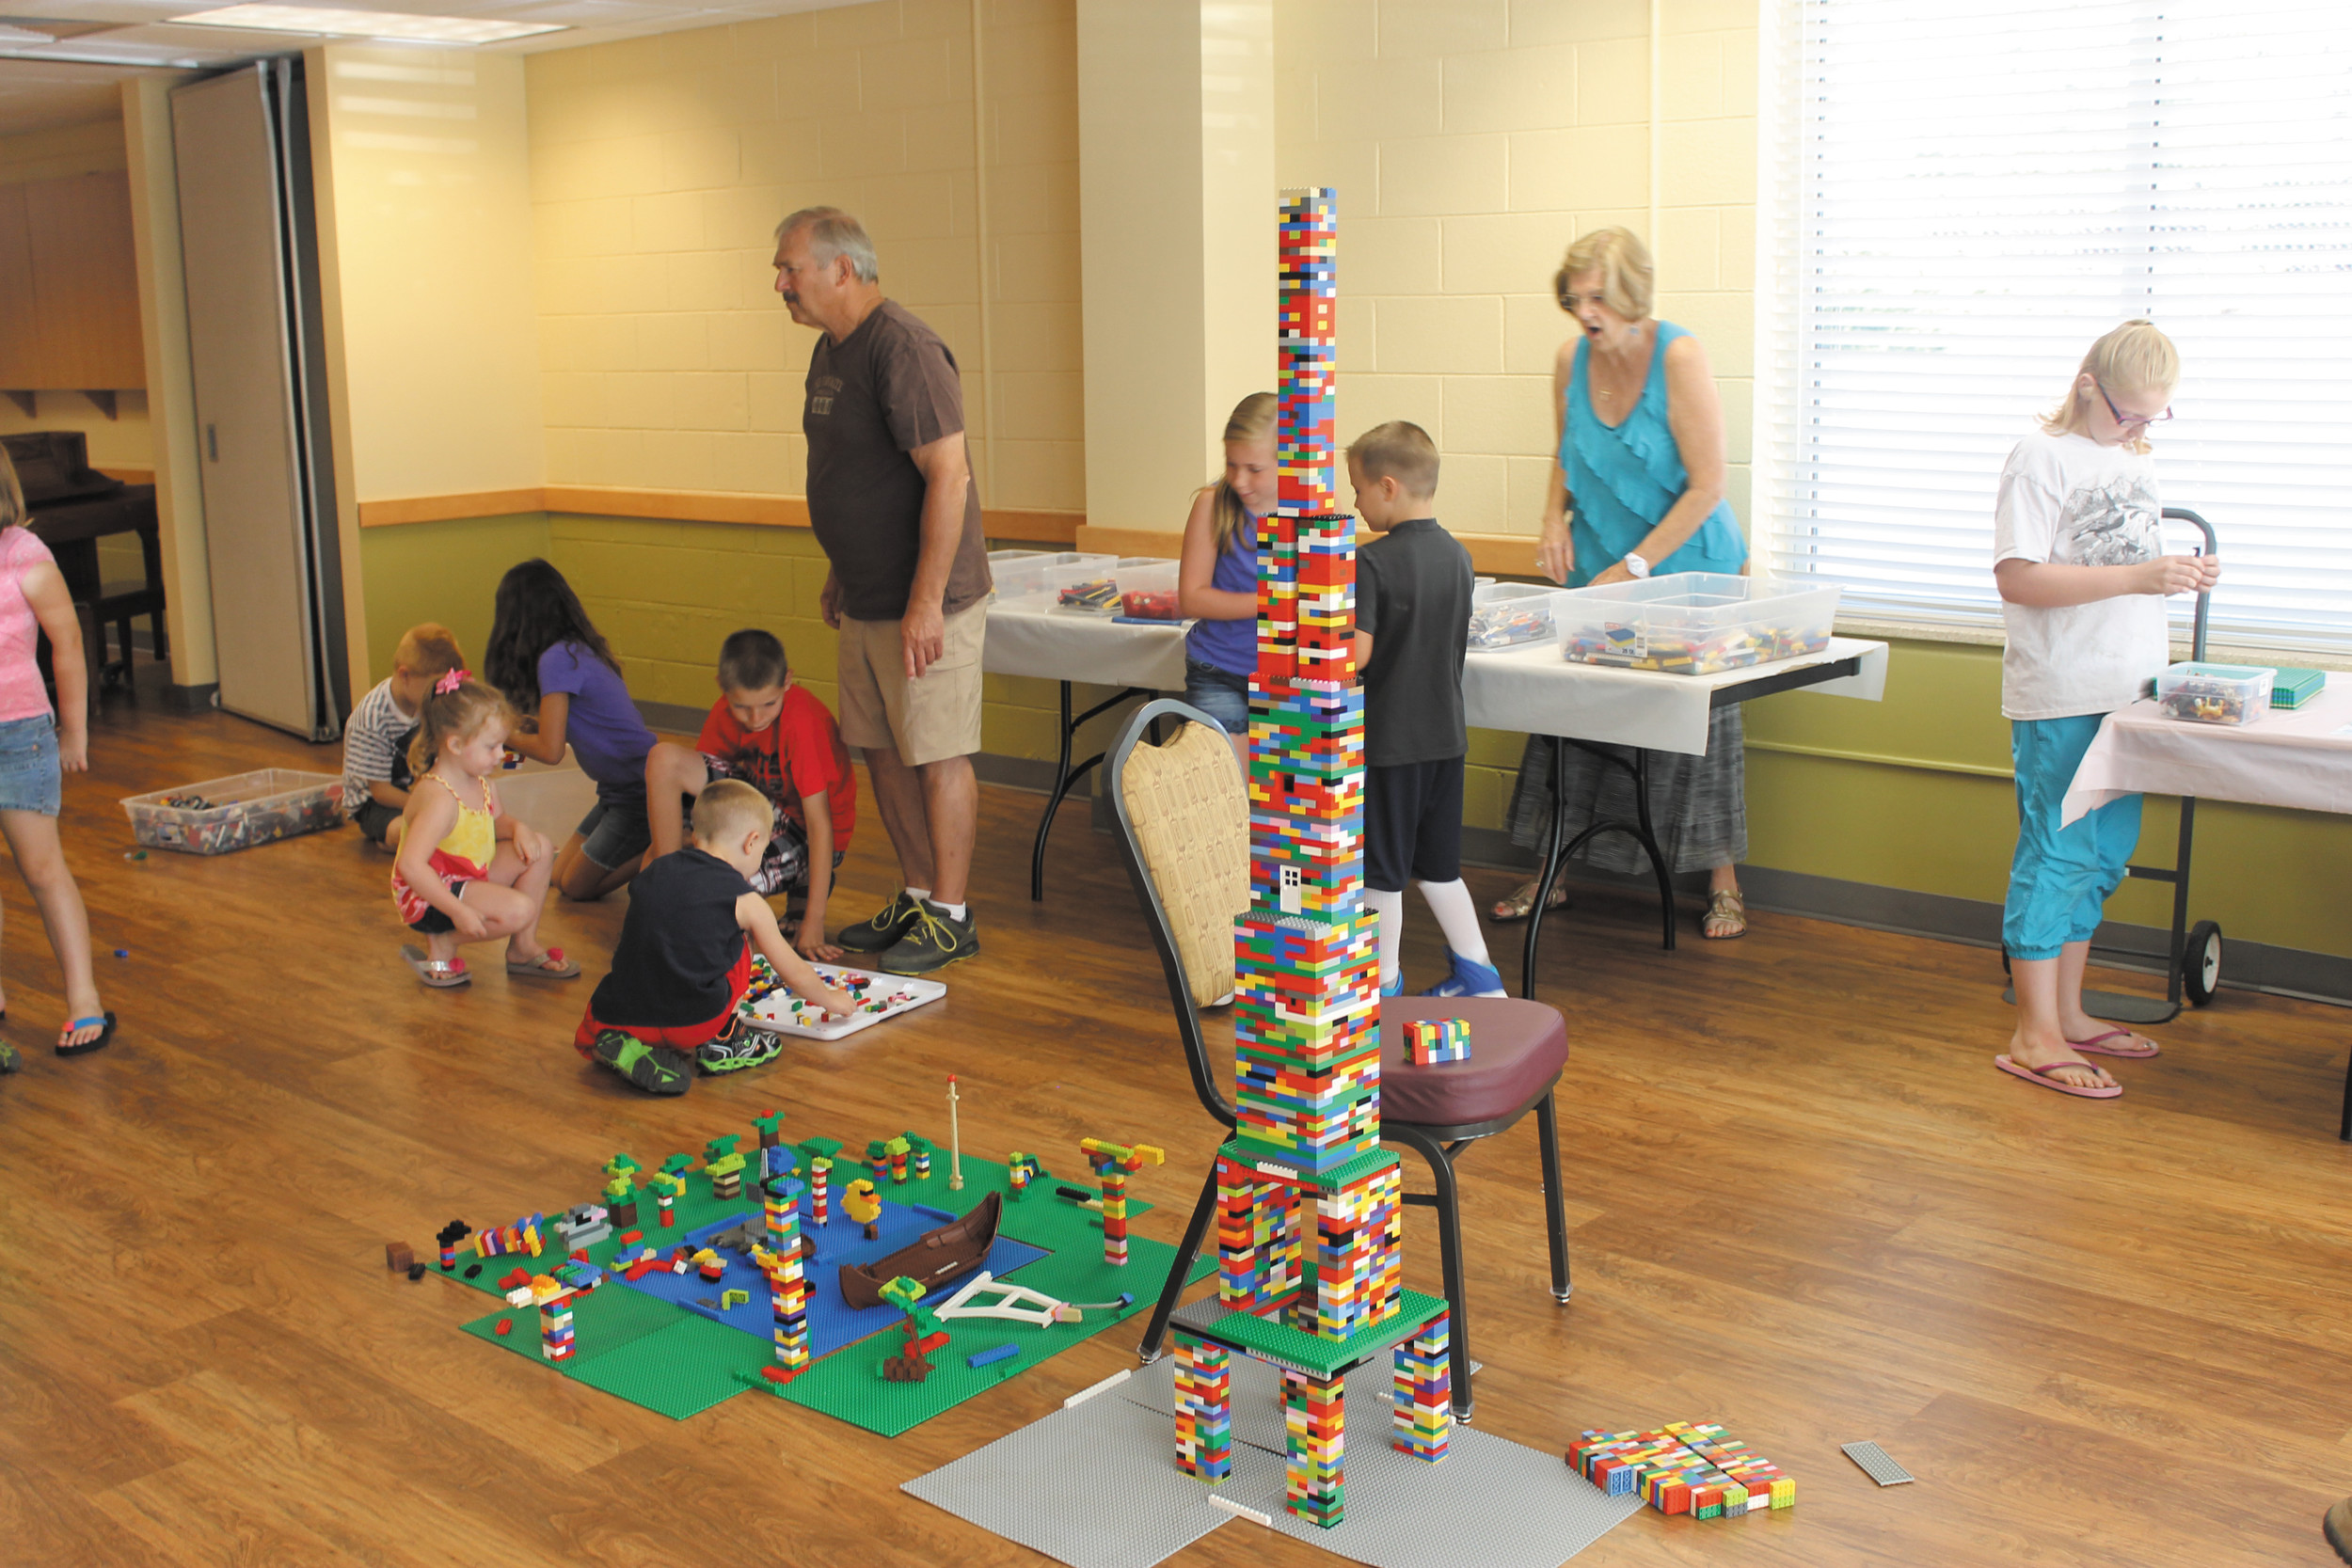 More than 40 children visited the Thornton Senior Center Aug. 6 on grandkids' day and participated in a Lego build, face painting, ate lunch and were serenaded by the Colorado Children's Chorale. The Senior Center will celebrate its 30th anniversary with multiple events Aug. 20-22.